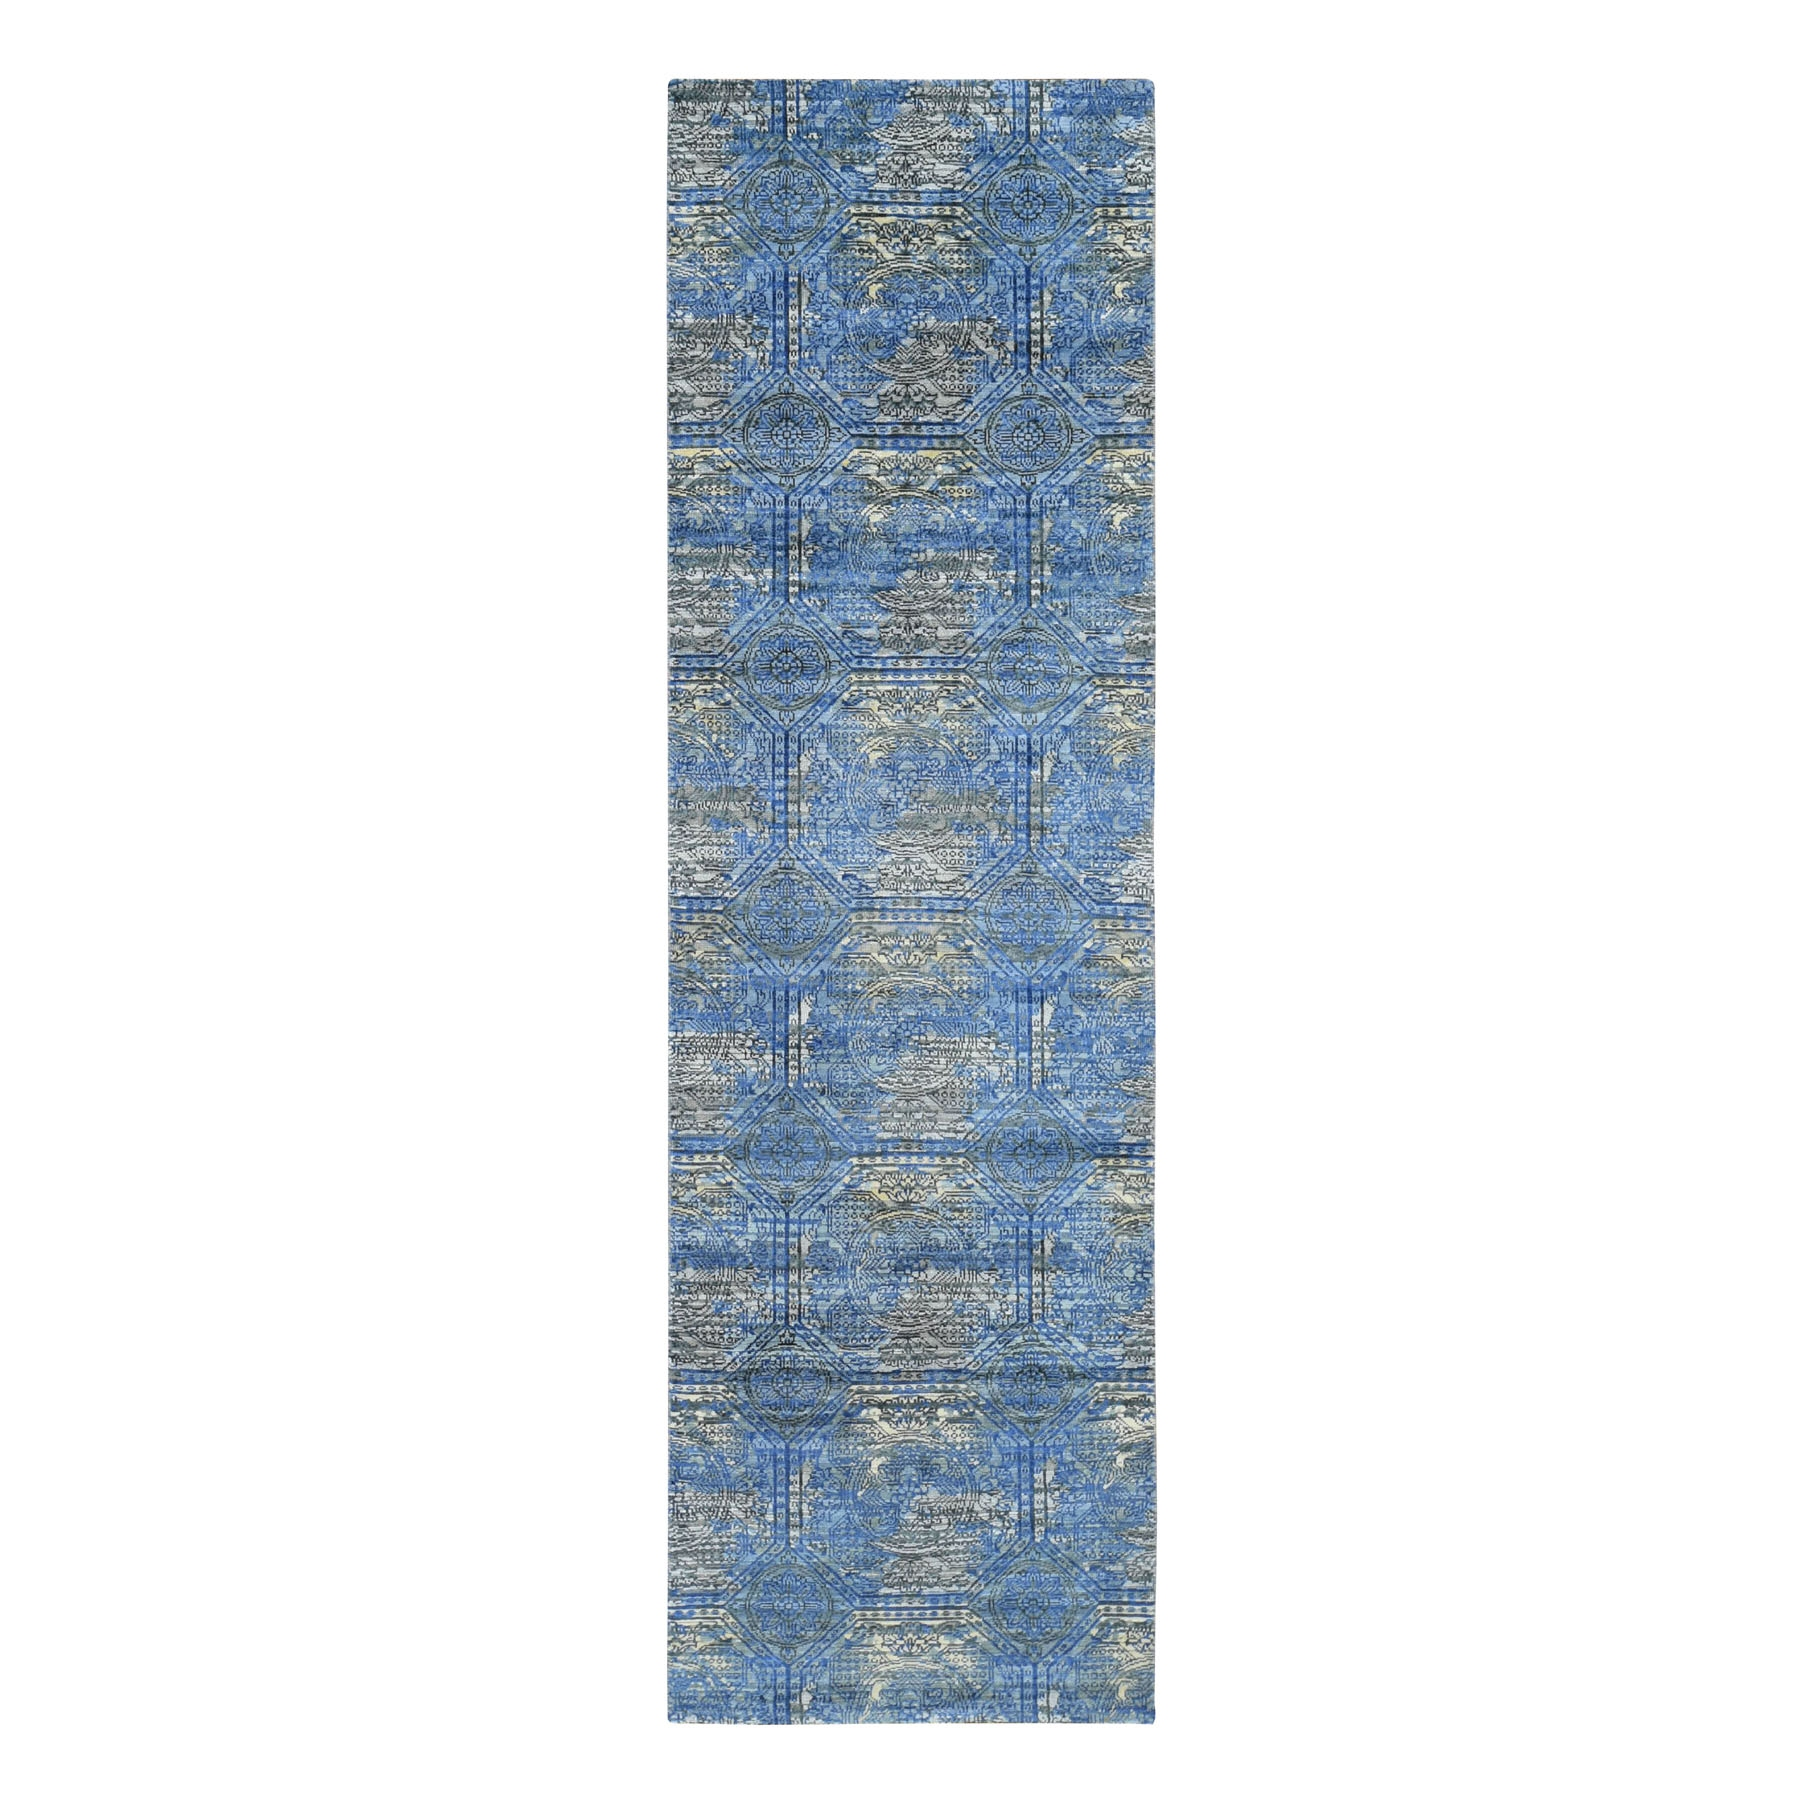 Mid Century Modern Collection Hand Knotted Blue Rug No: 0195774